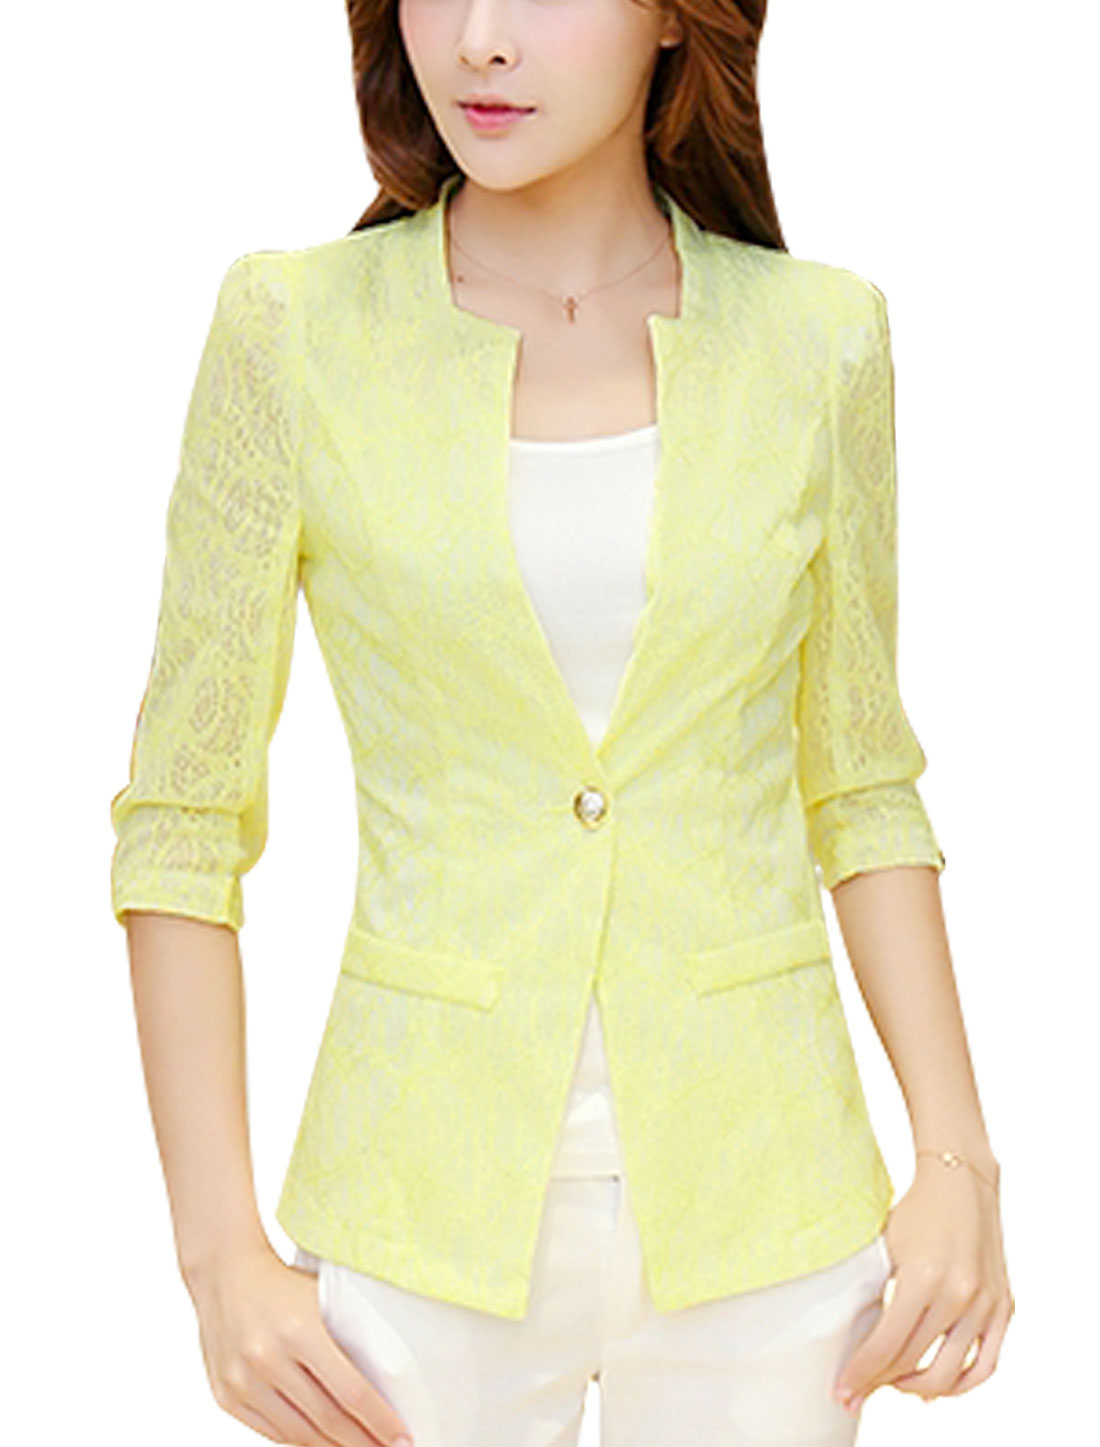 Women One Button Closed Fake Pockets Front Casual Blazer Jacket Light Yellow M